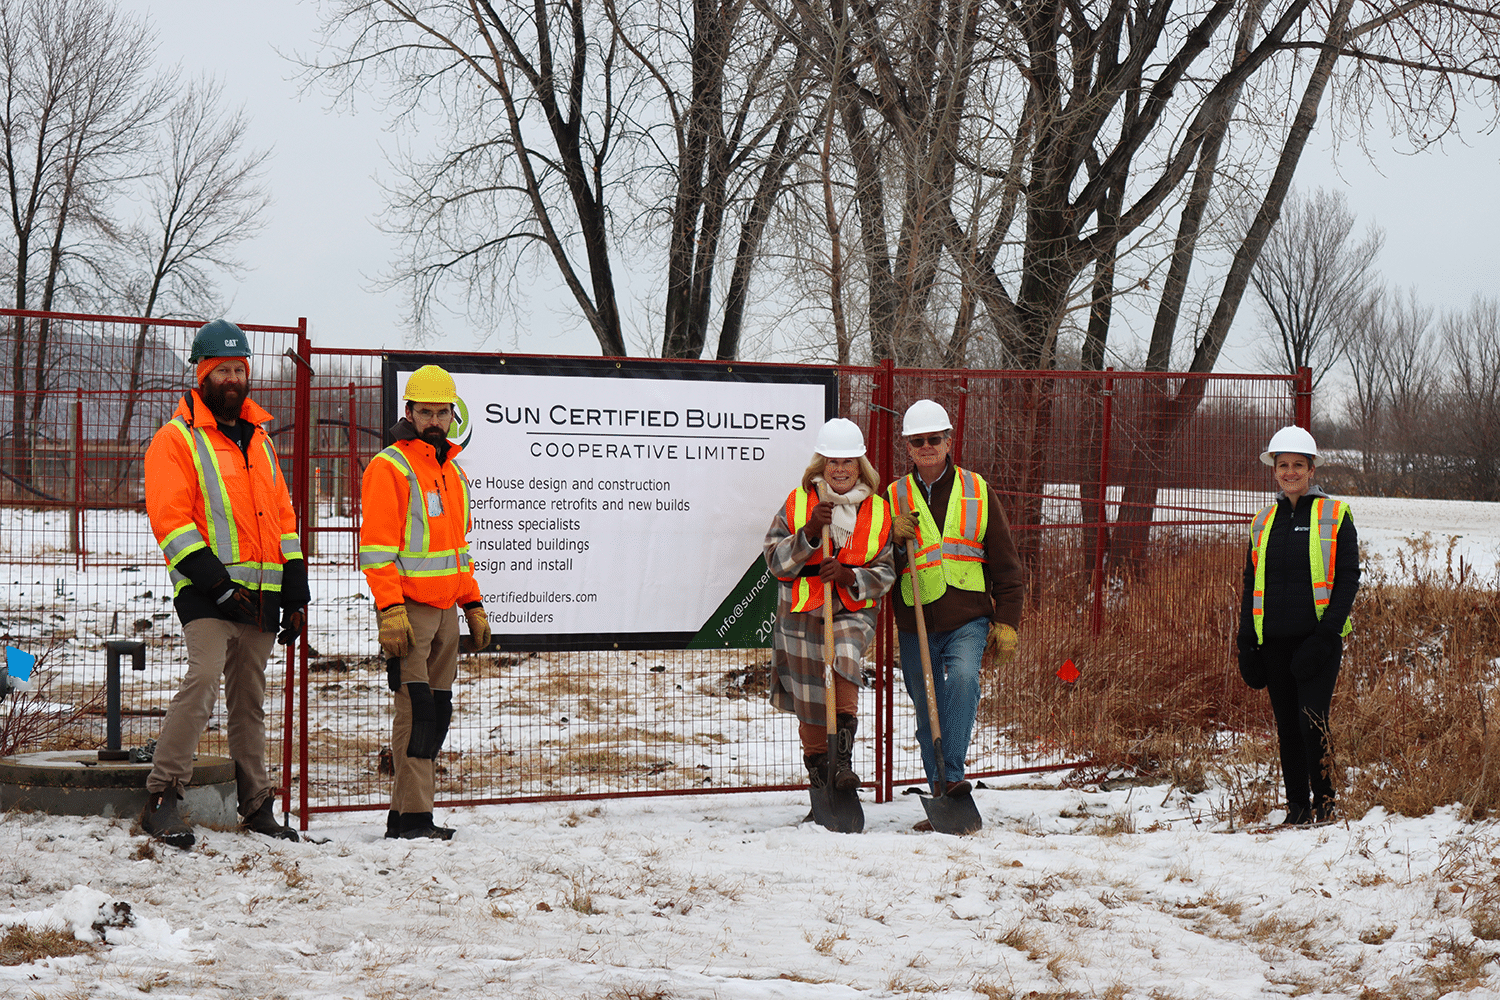 Two Sun Certified employees, Marnie and Bob Puchniak, and Liz Wilson from FortWhyte Alive stand in front of the building site for the new woodworking studio. All wear bright orange vests and hard hats.